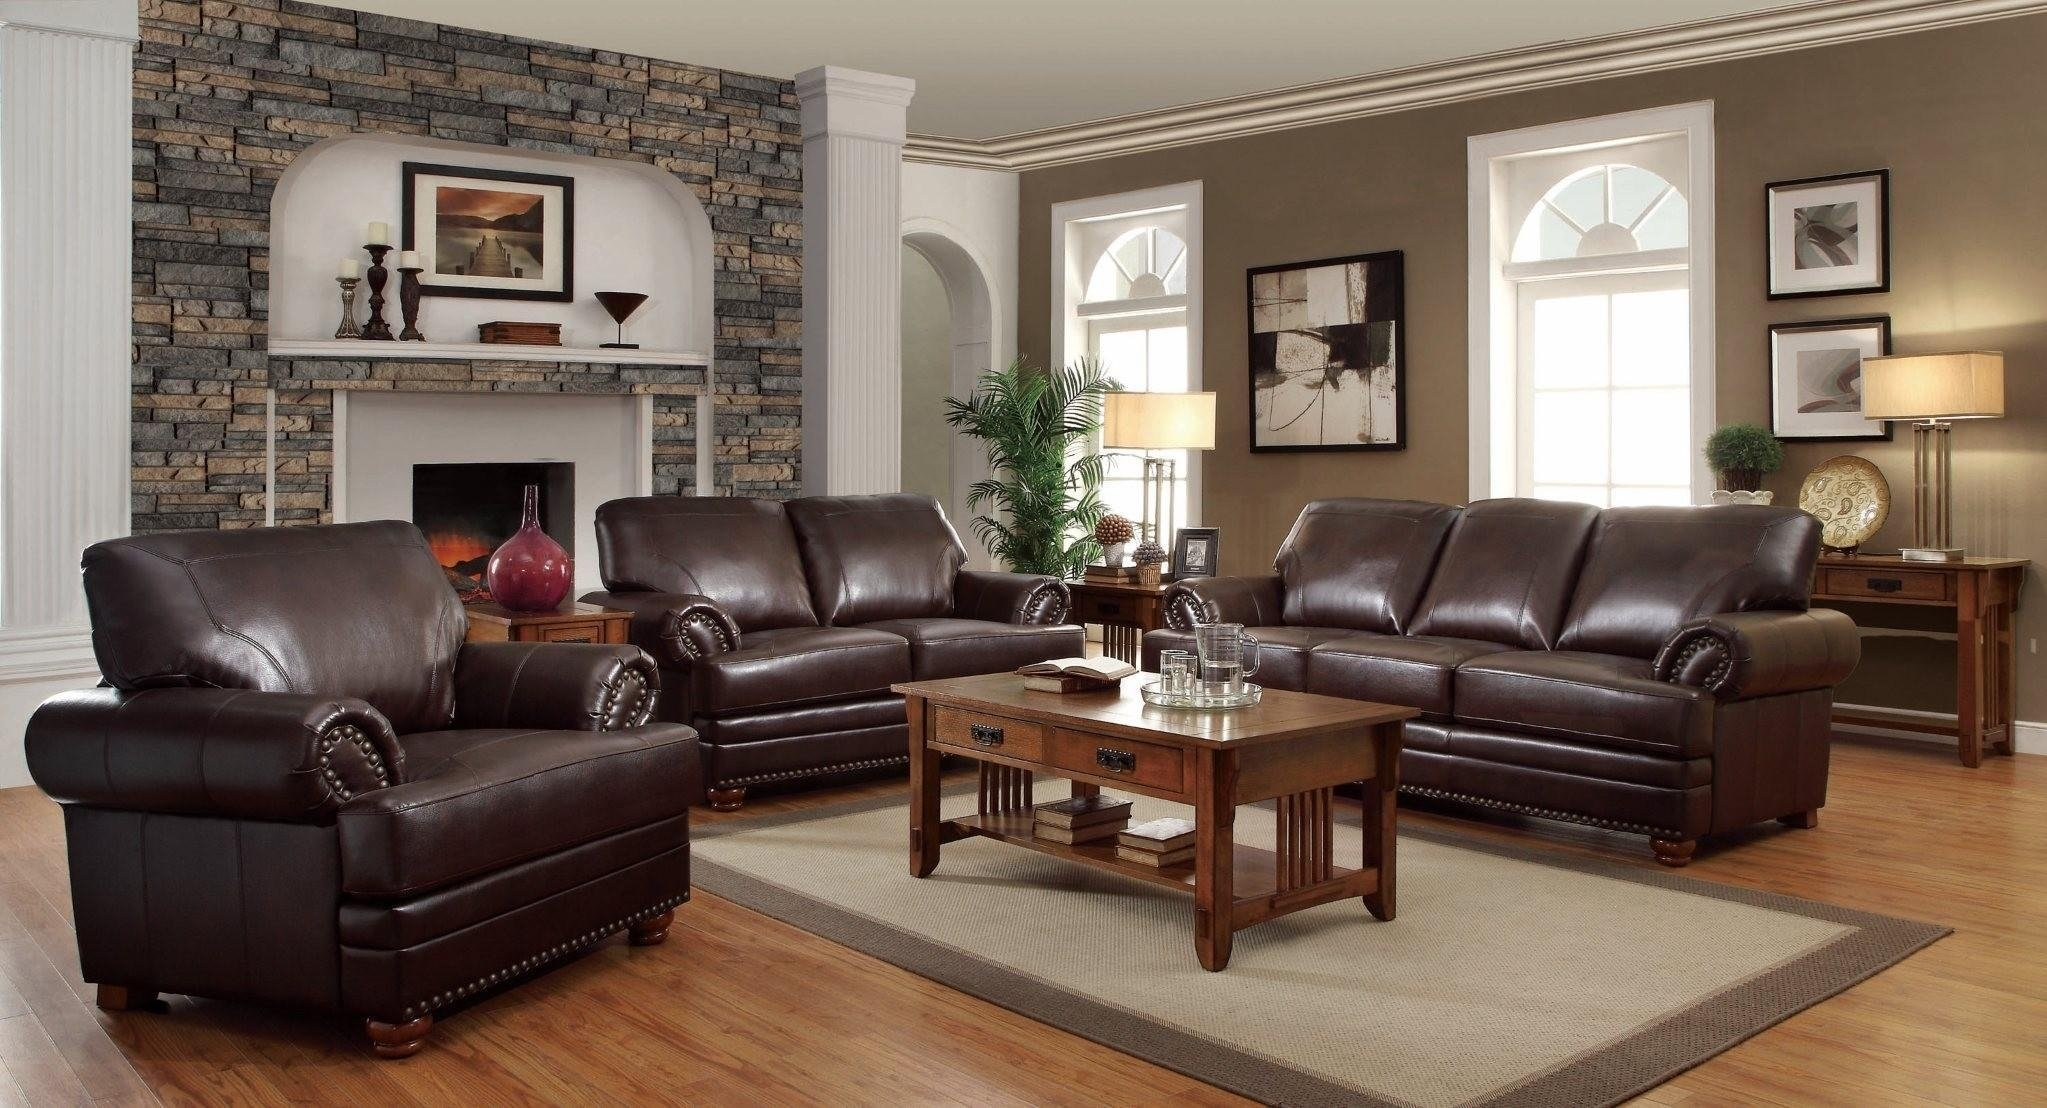 10 Awesome Leather Couch Living Room Ideas living room black and white leather sofa white leather sofa living 2020